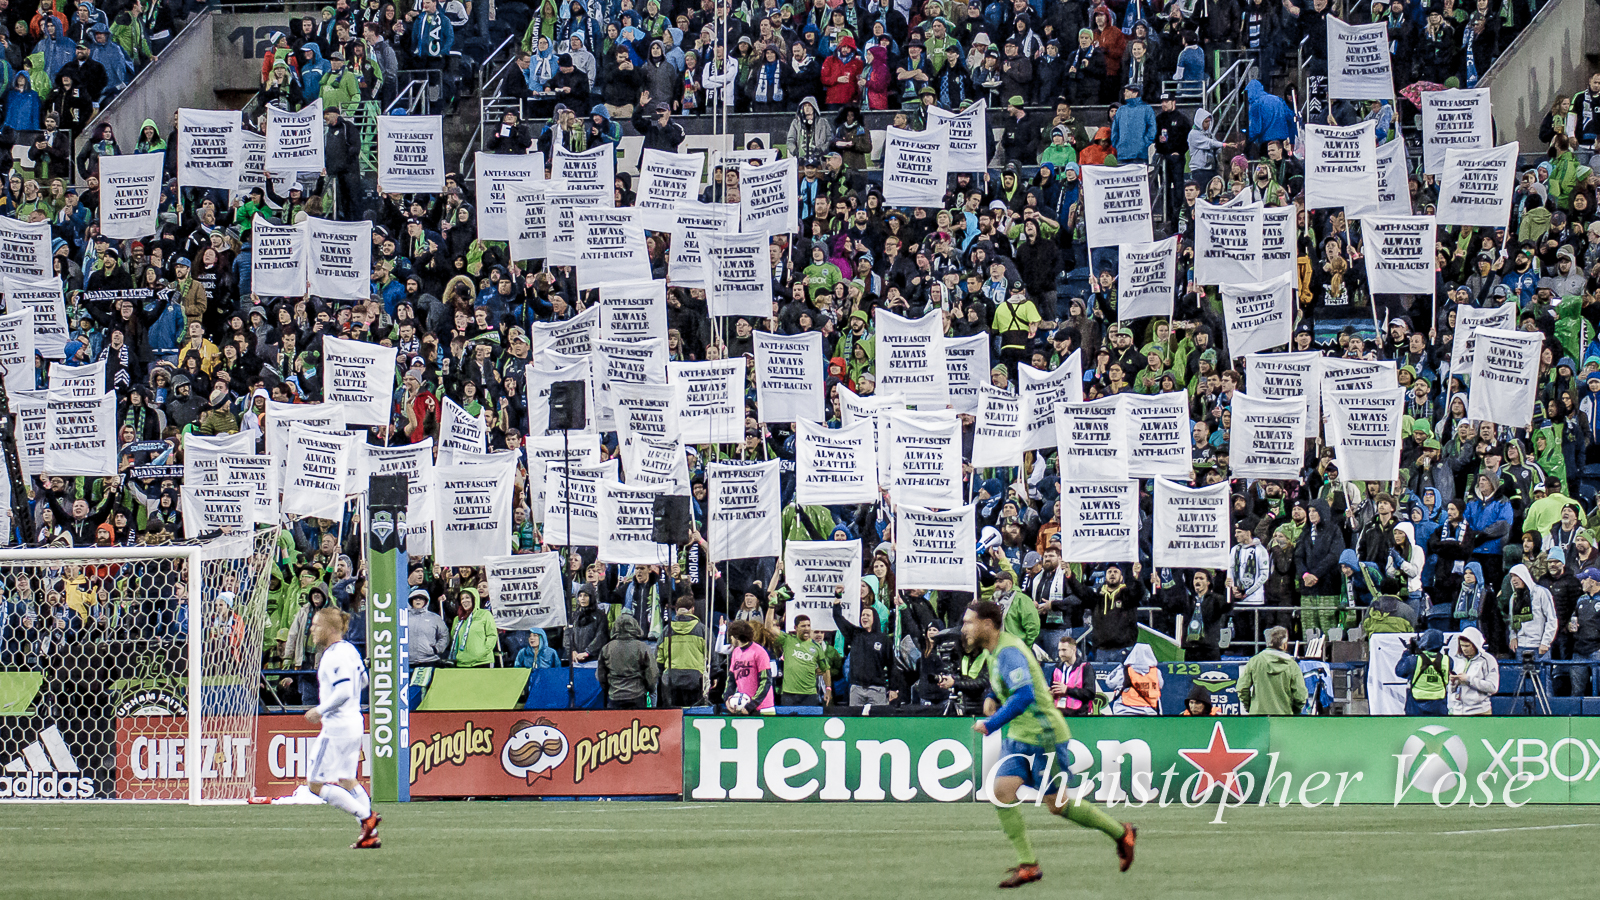 2017-11-02 Emerald City Supporters Anti-Fascist, Anti-Racist, Always Seattle Tifo.jpg